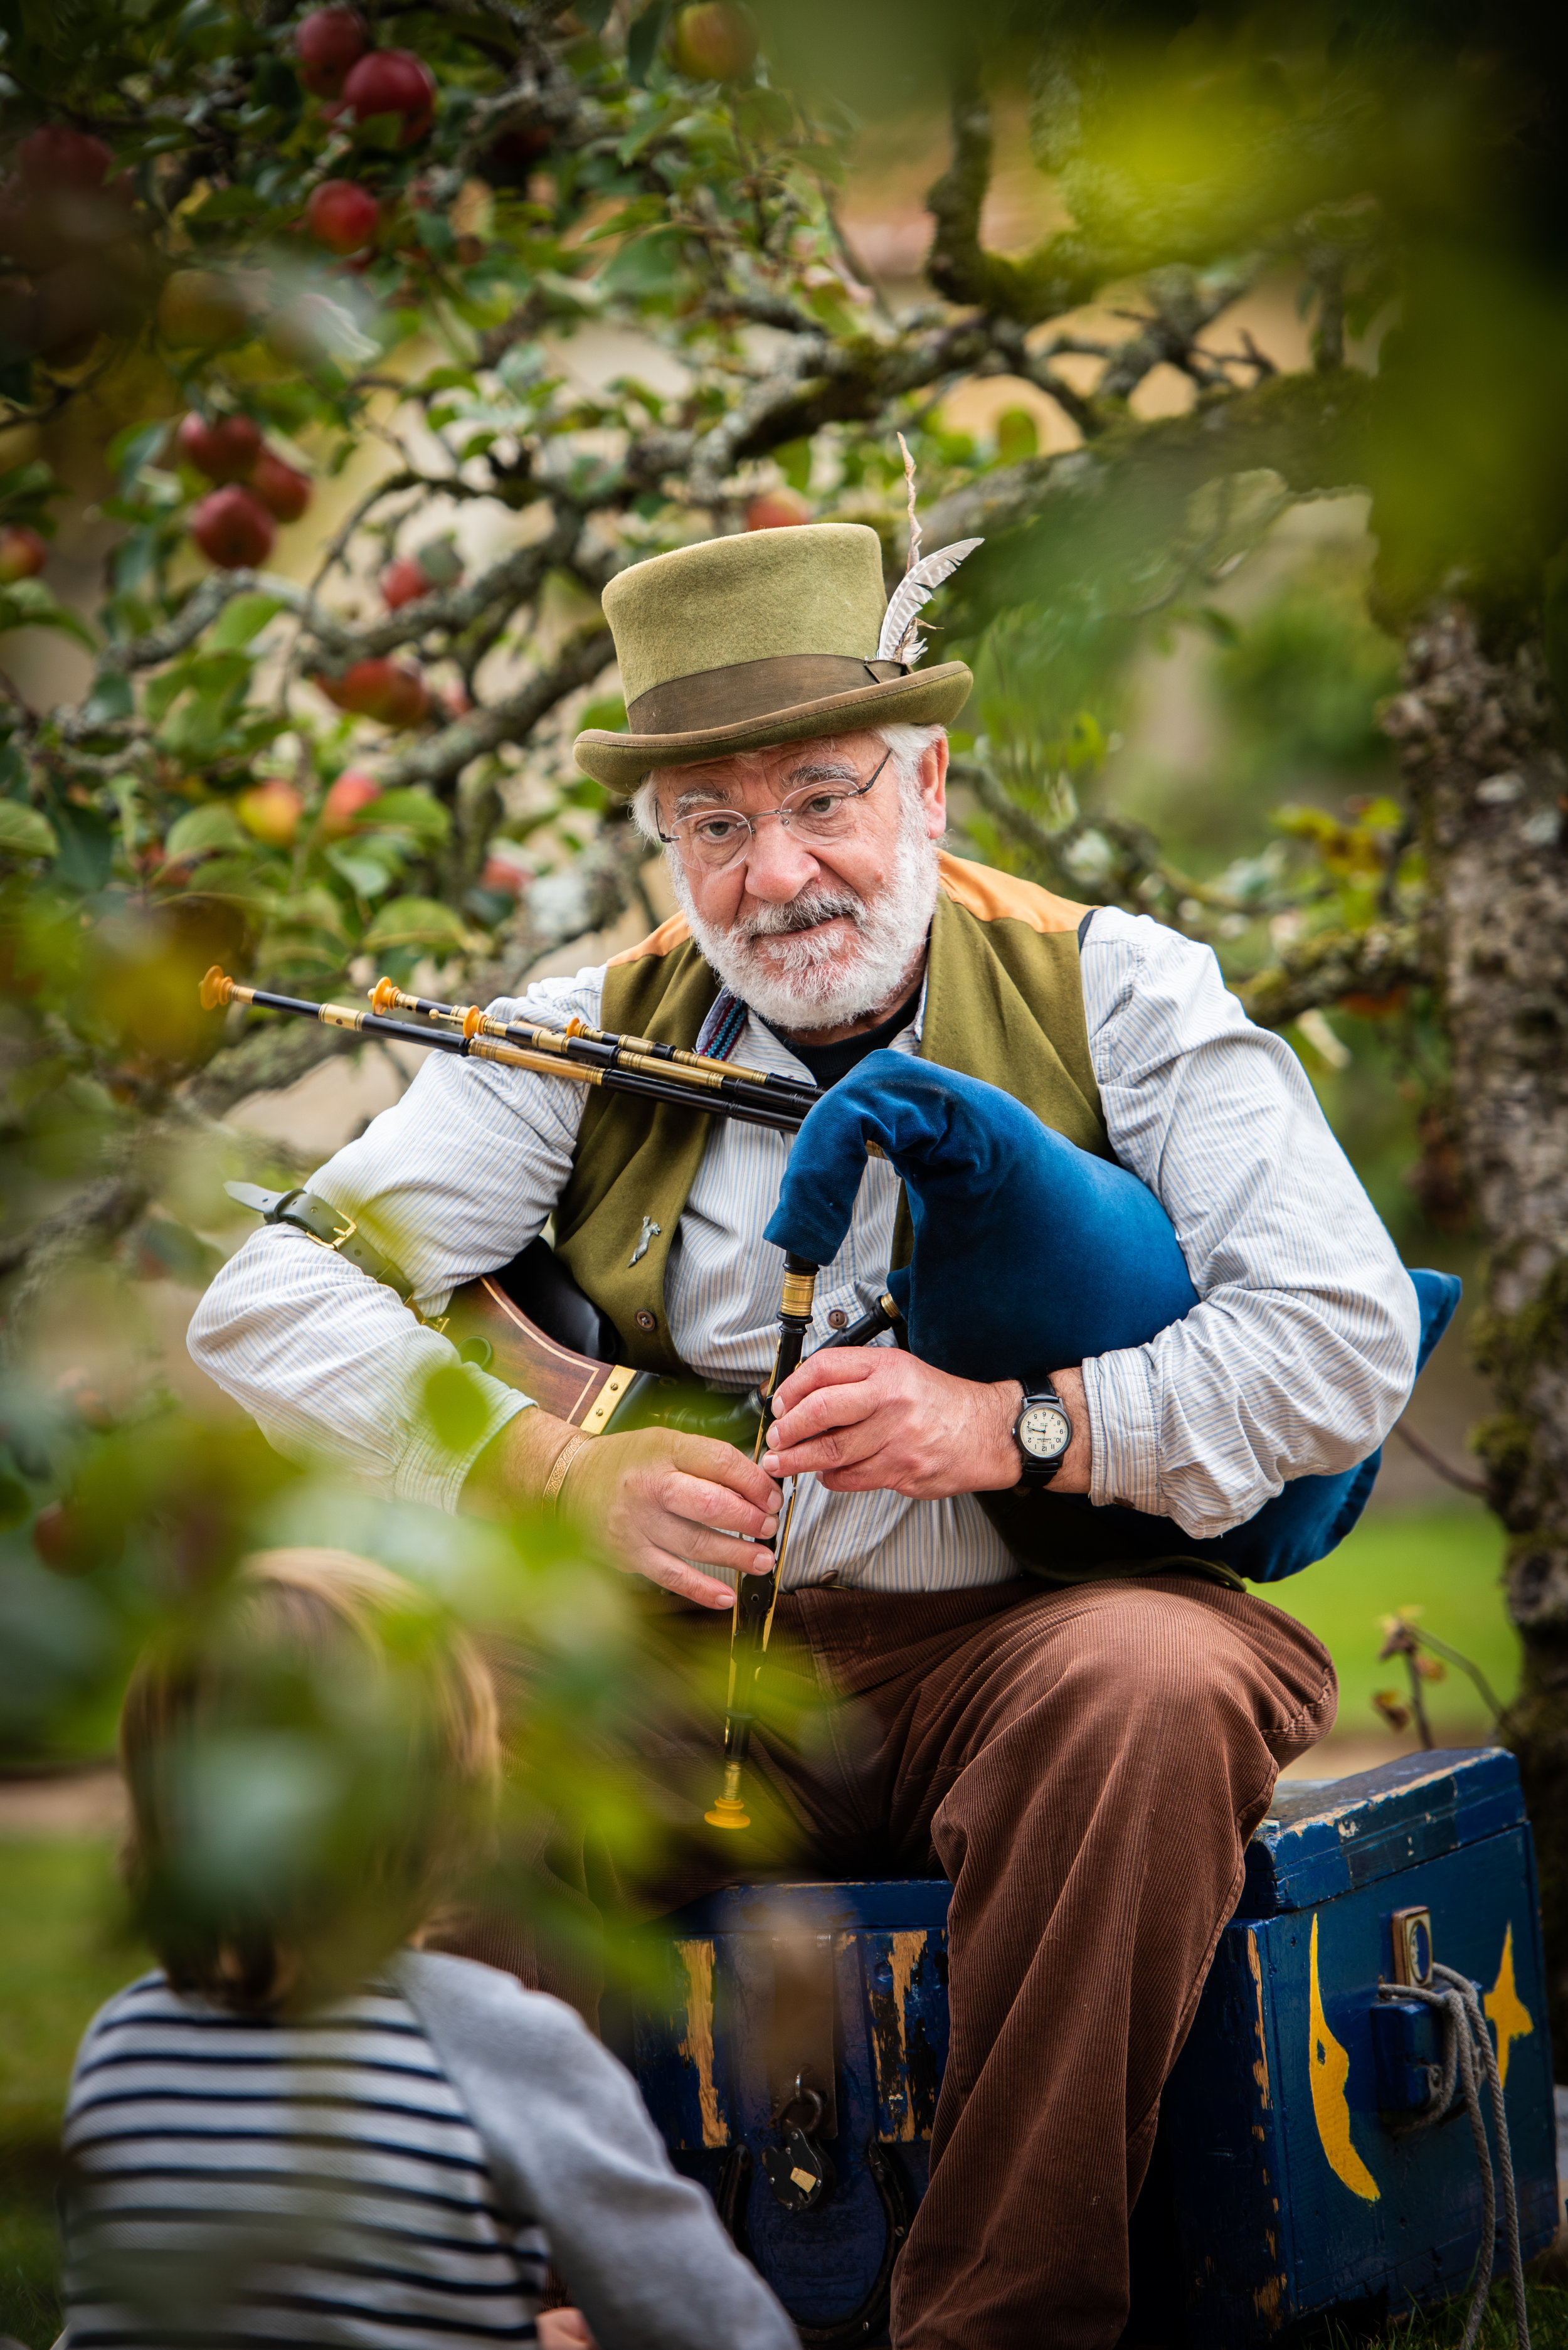 The writer and Storyteller Michael O'Leary in the orchard at Houghton Lodge Gardens near Stockbridge in Hampshire